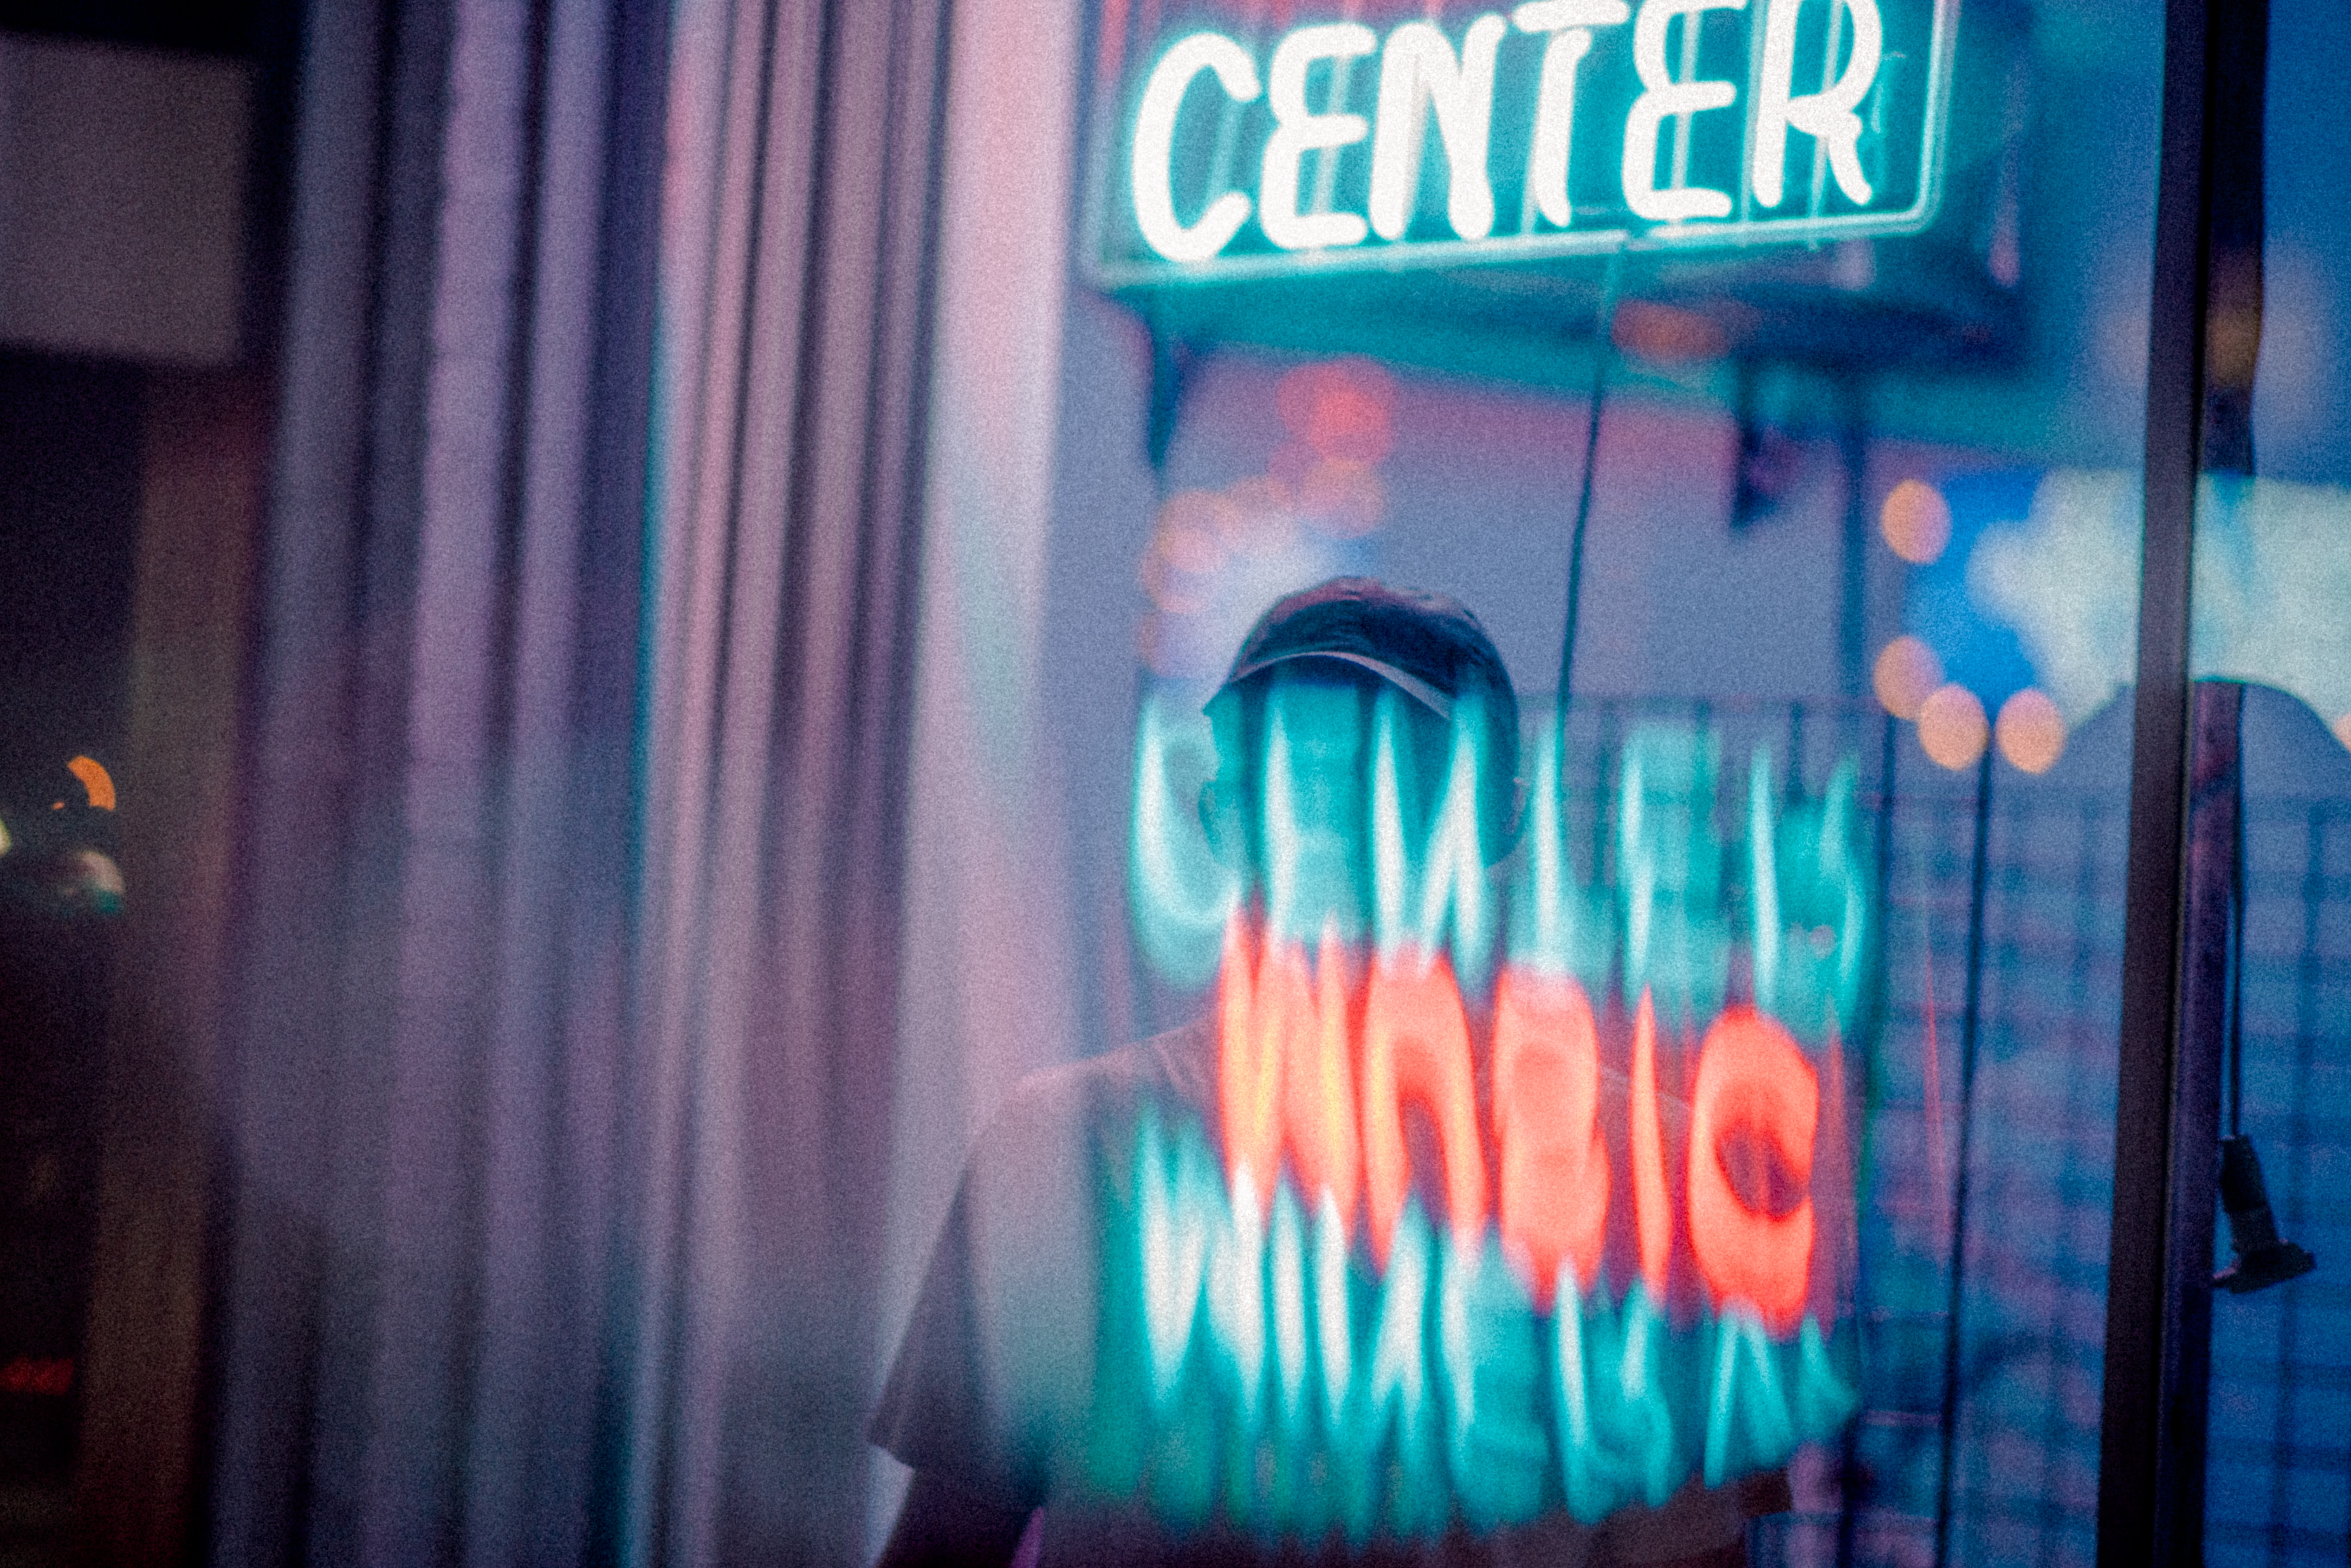 turned on green Center neon signage behind clear glass wall